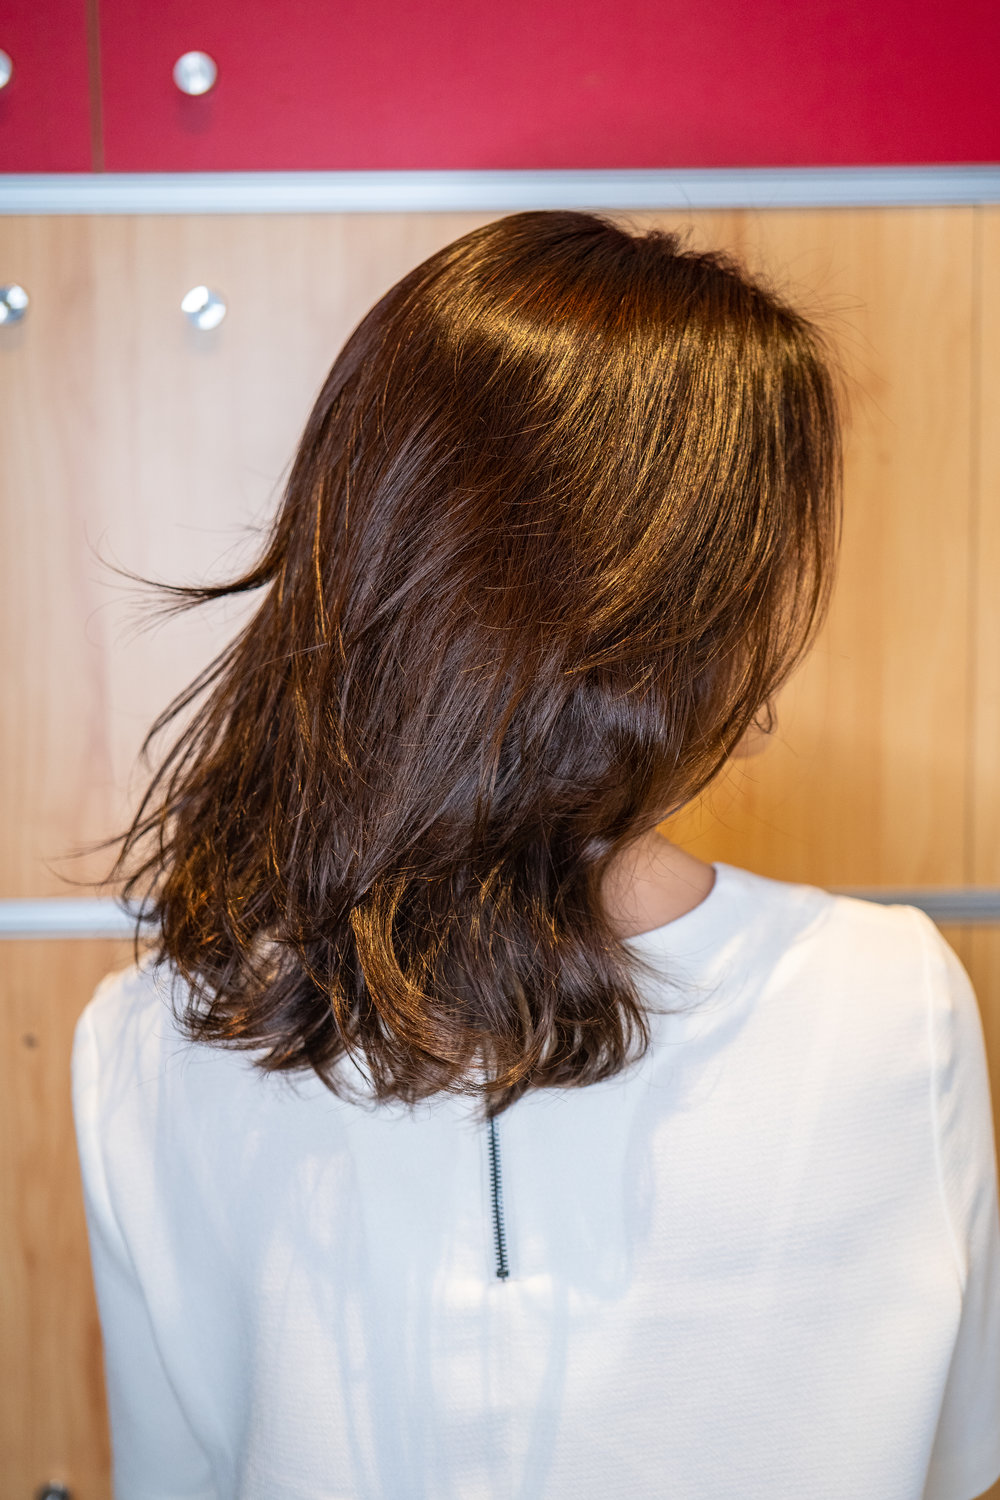 Loose waves created with Korean Designer Perm technique by Matthew Kim at Du Sol Beauty Novena